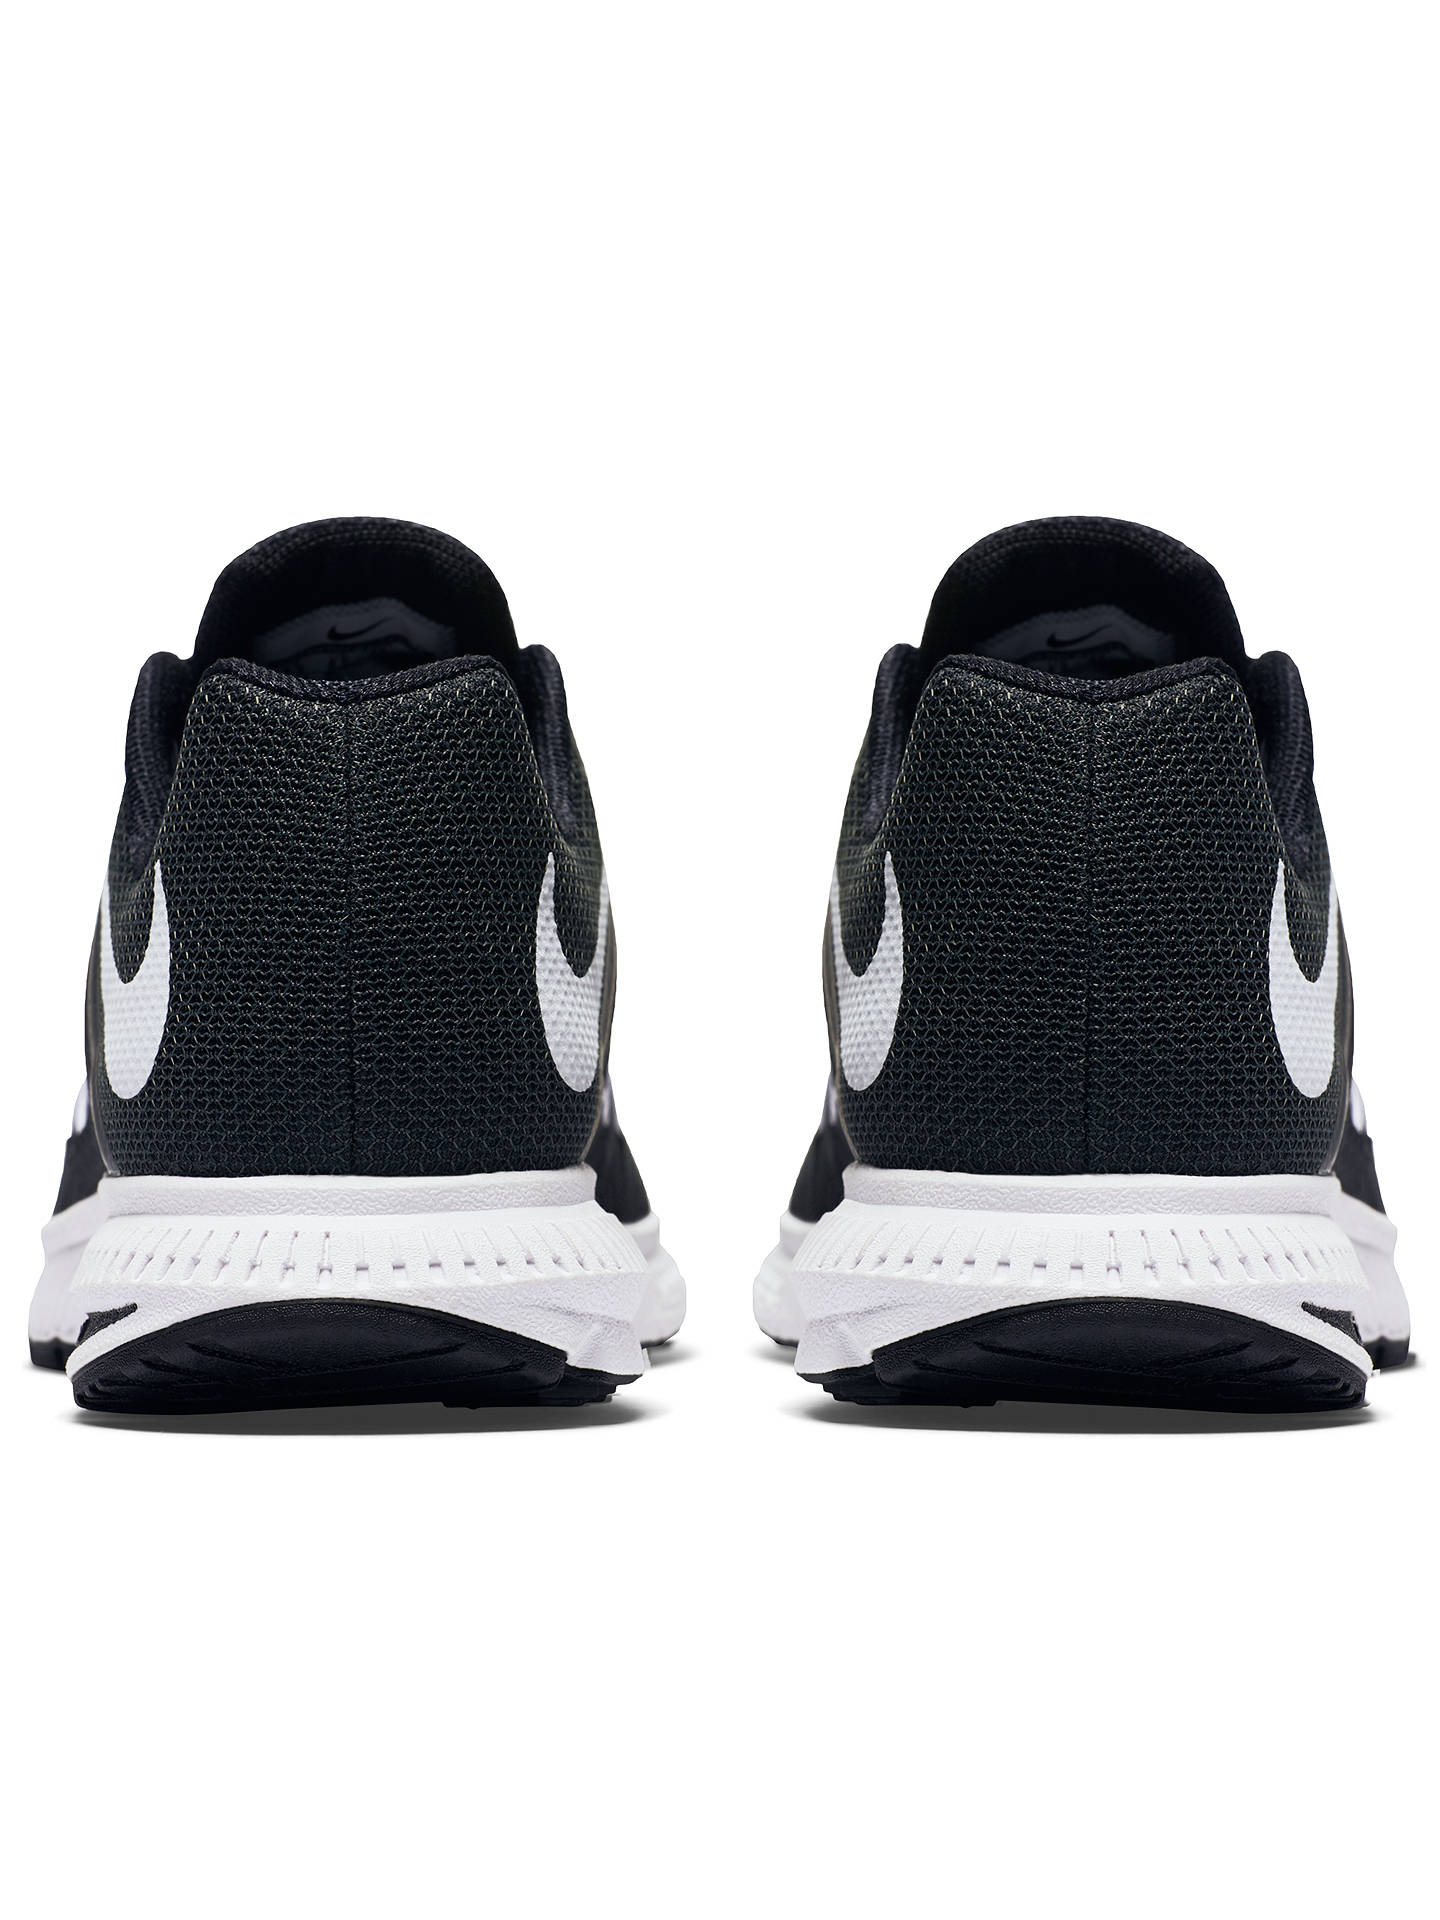 016487288a48 ... discount buynike air zoom winflo 3 mens running shoes black white 7  online at 2648d f37b9